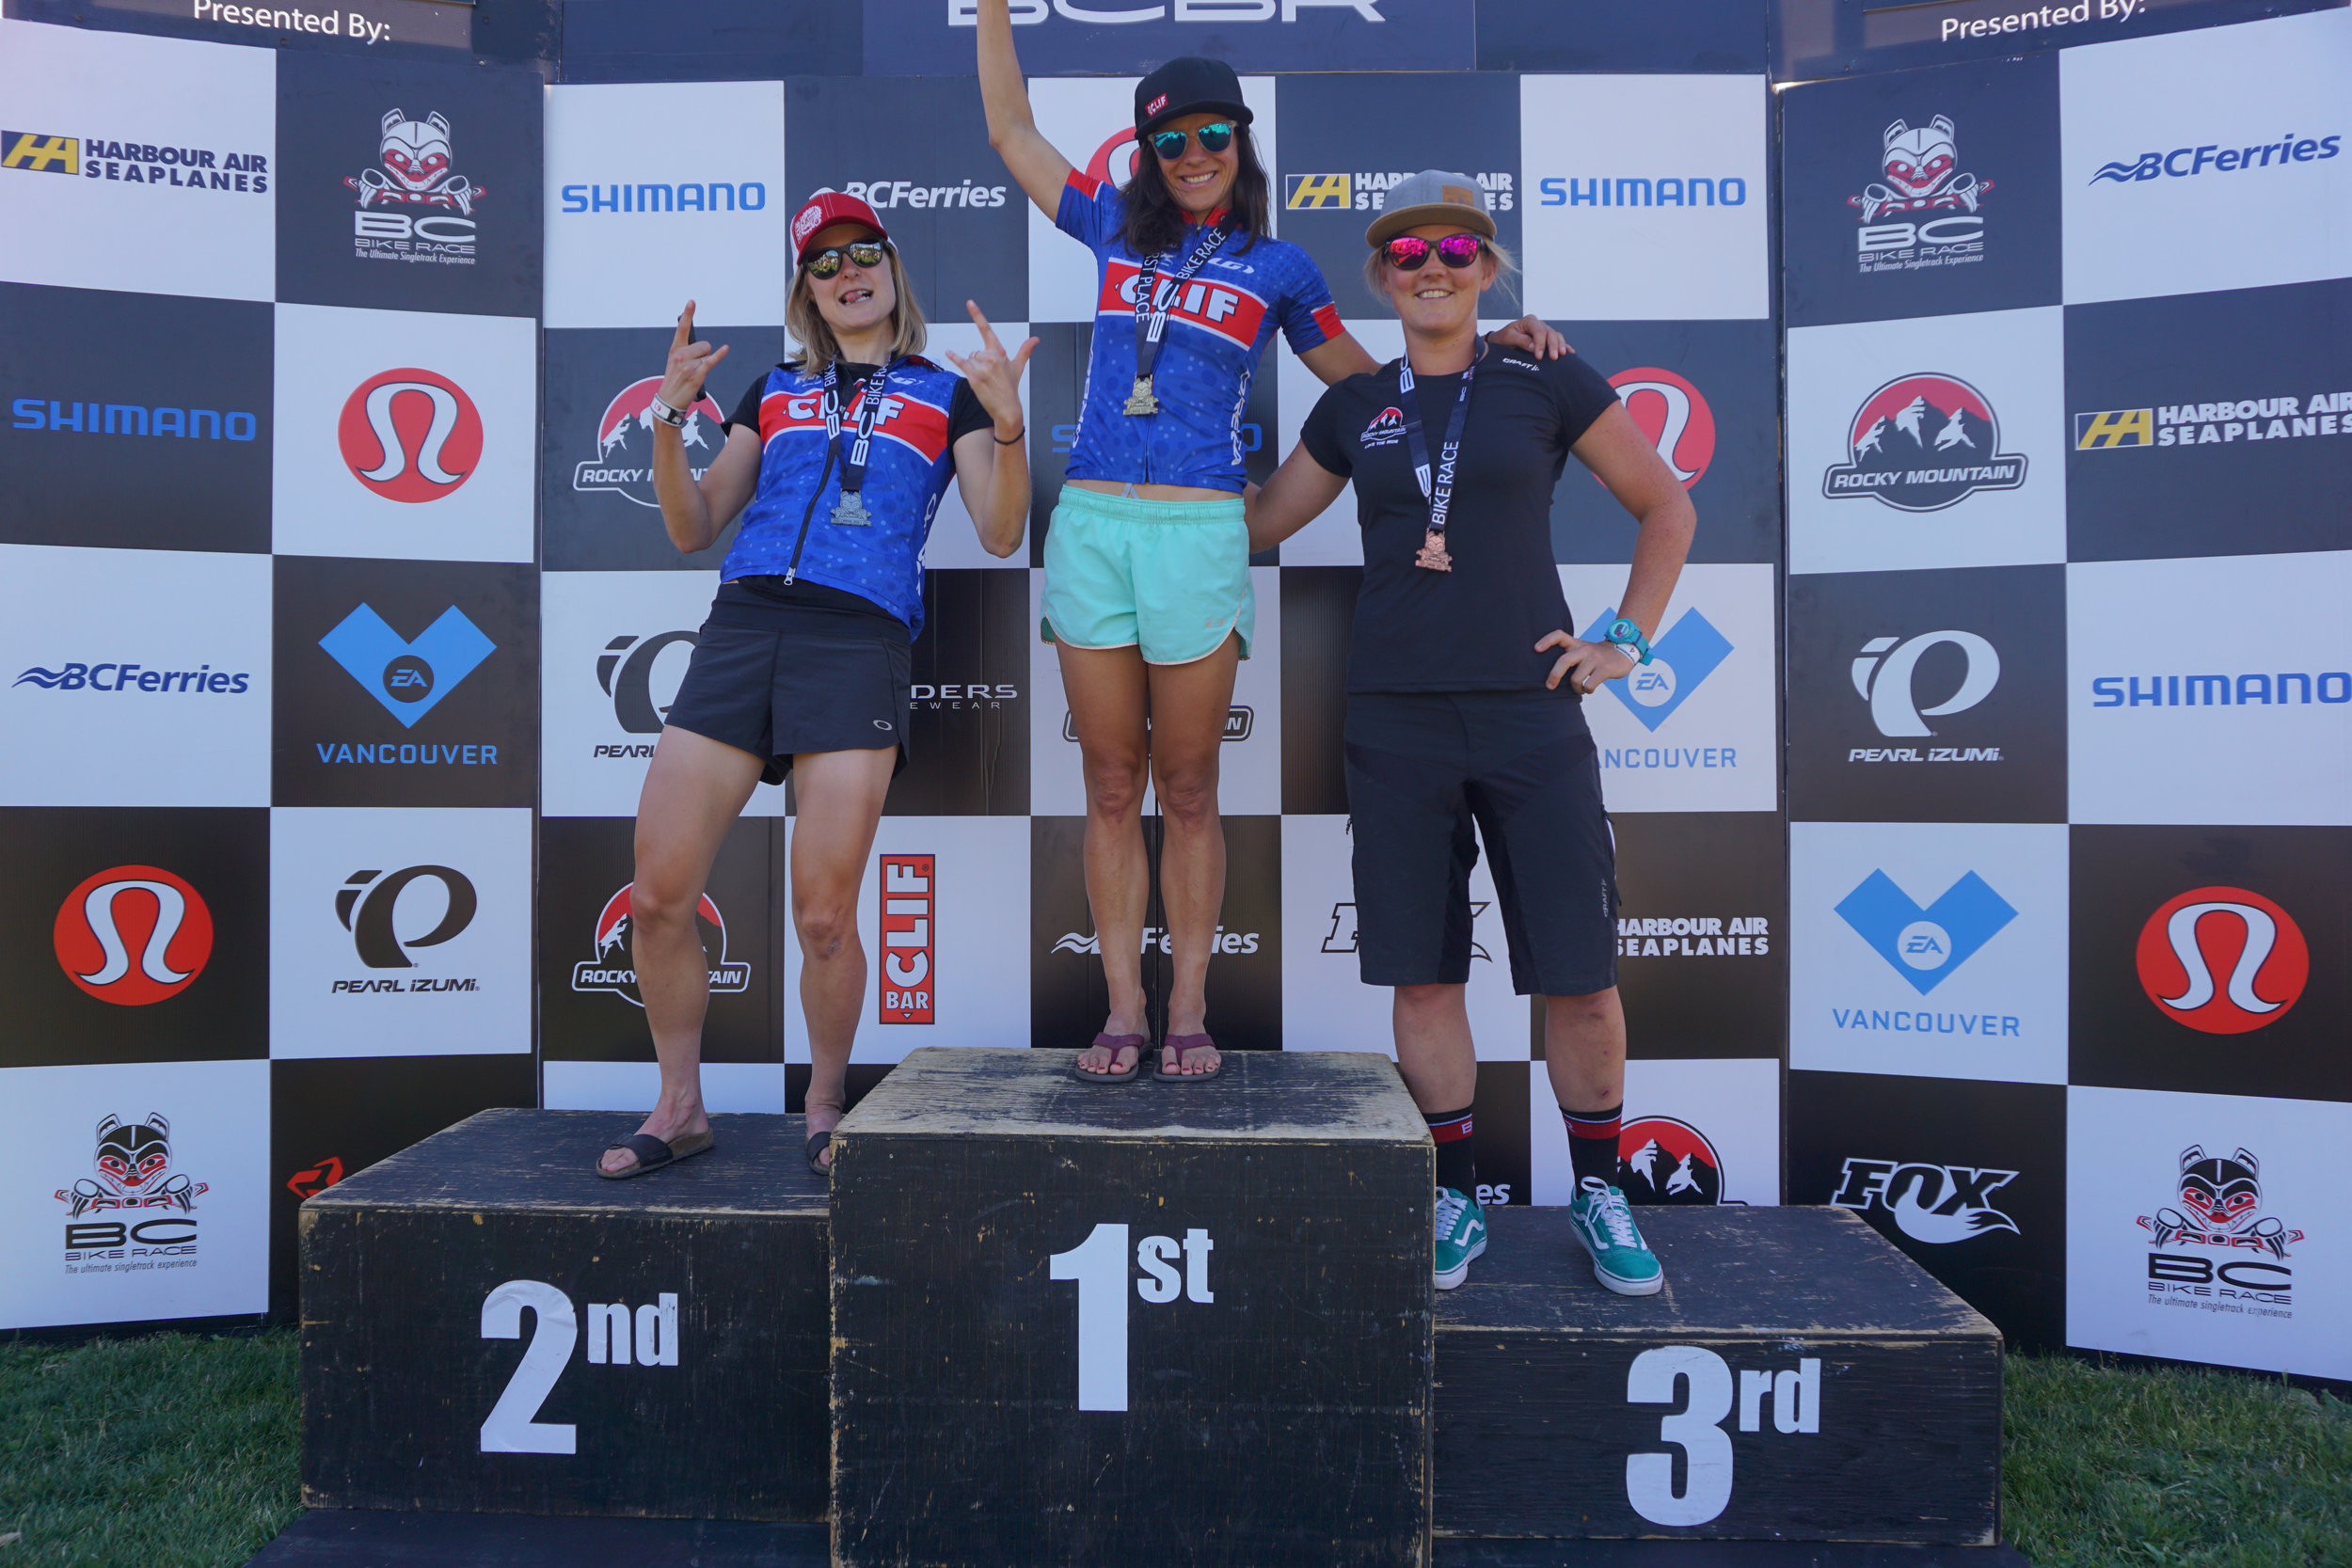 Podium with Katerina and Hielke.